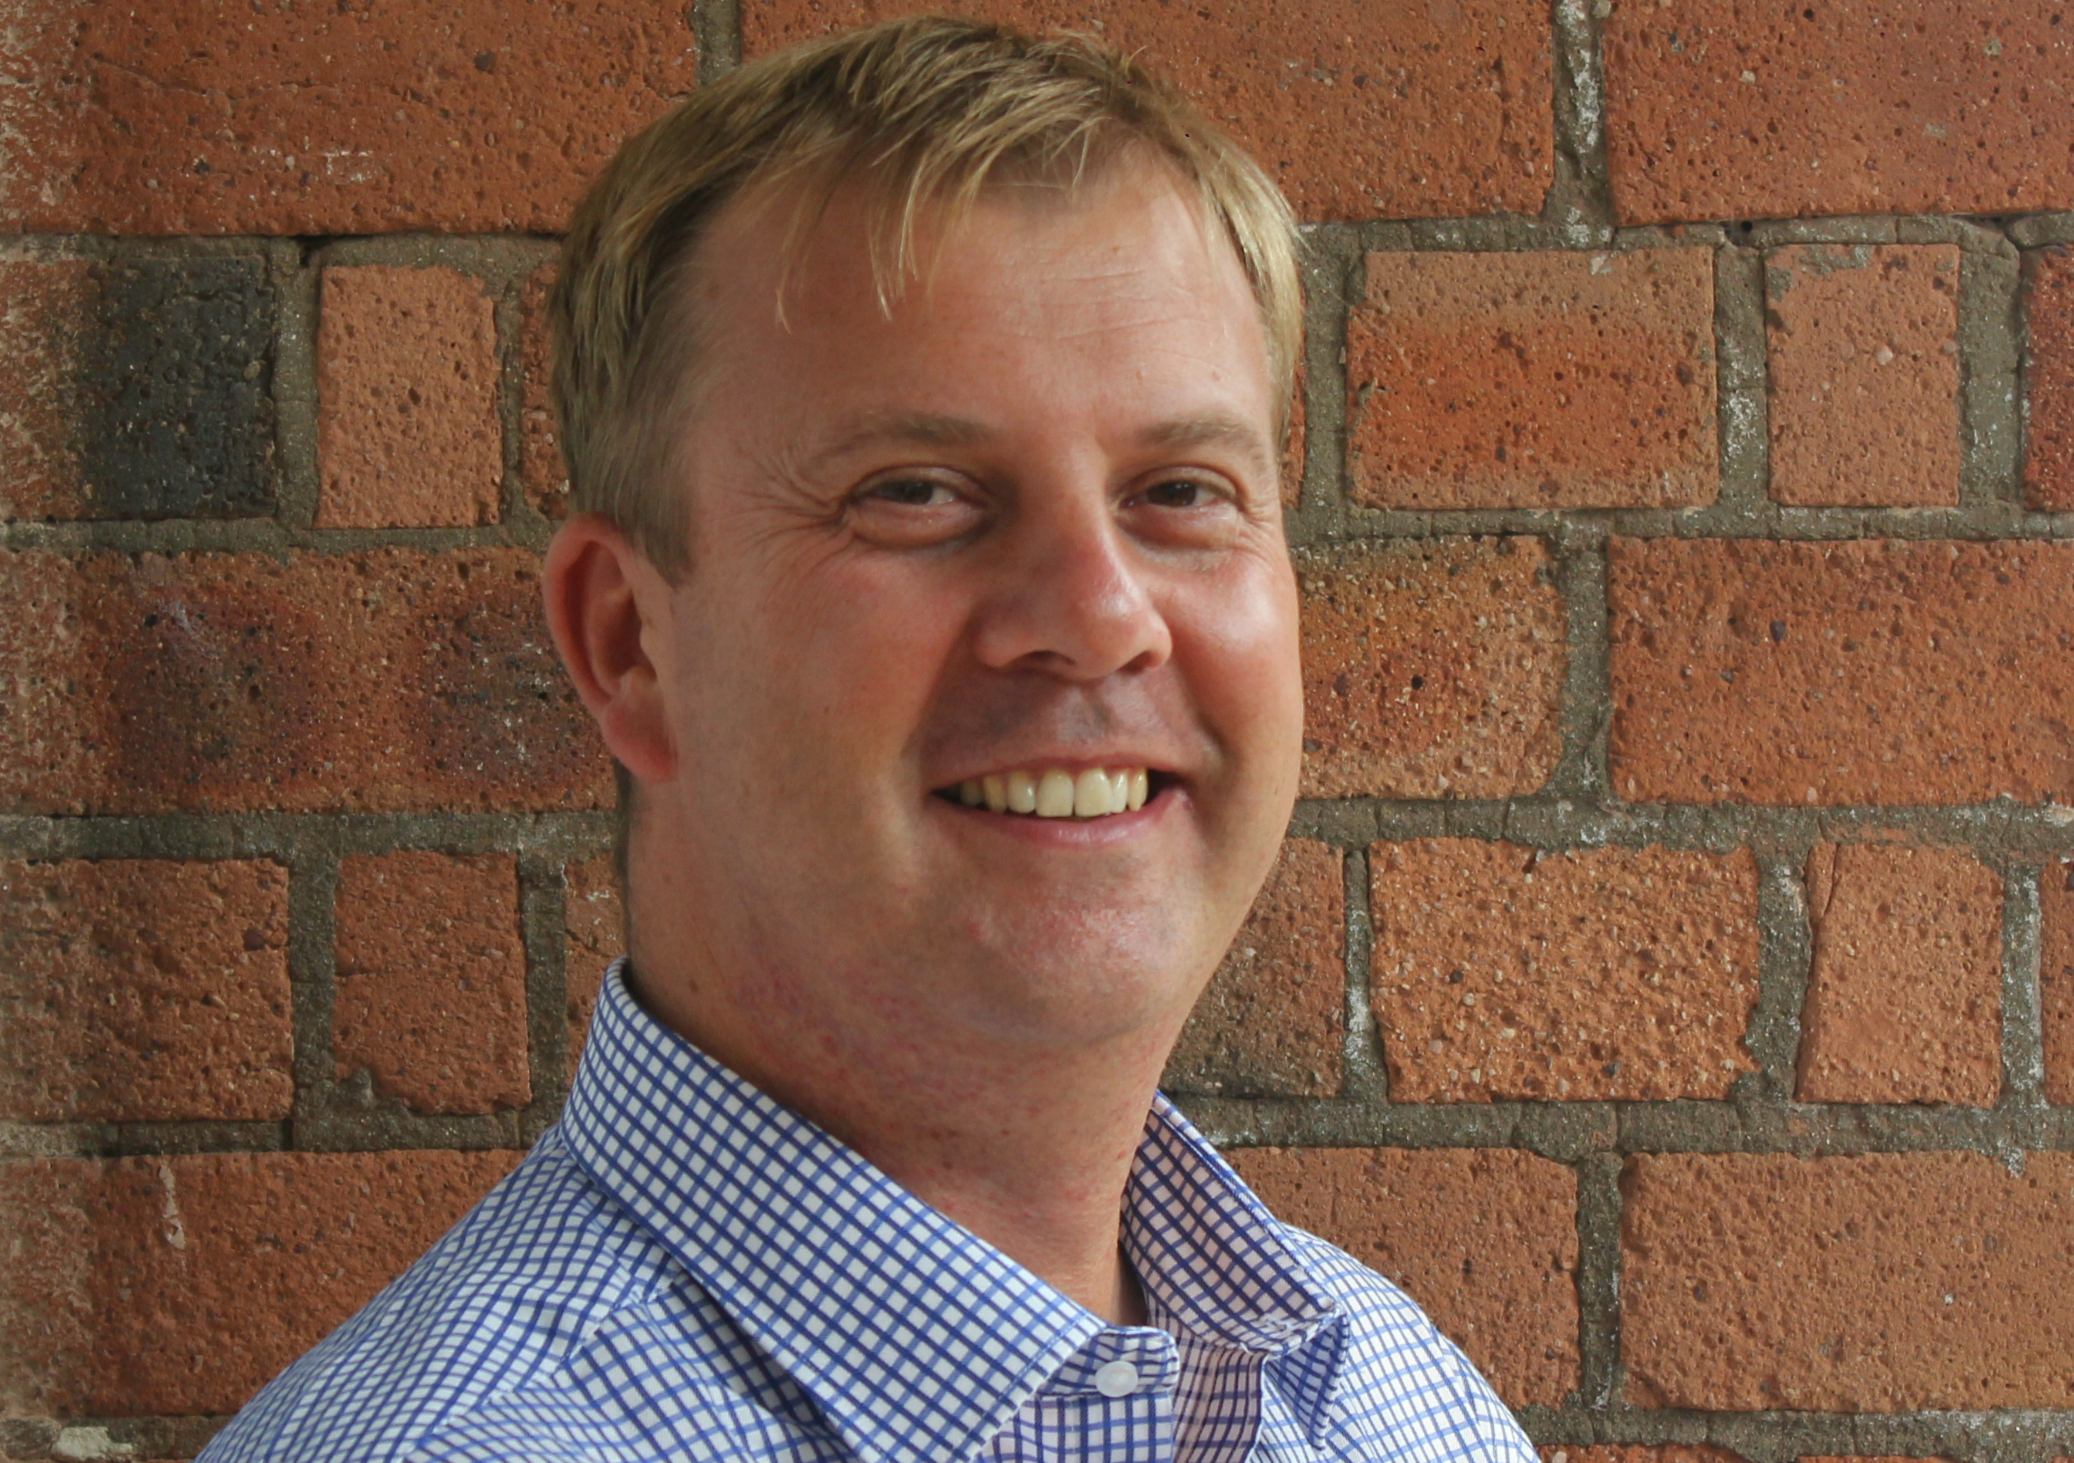 Kristian Hancock, Team Leader   Kris is perfectly positioned to head up this team. His years of experience as a head teacher help him understand the part that coaching plays in the big picture, while his personal approach makes him a superb individual coach.